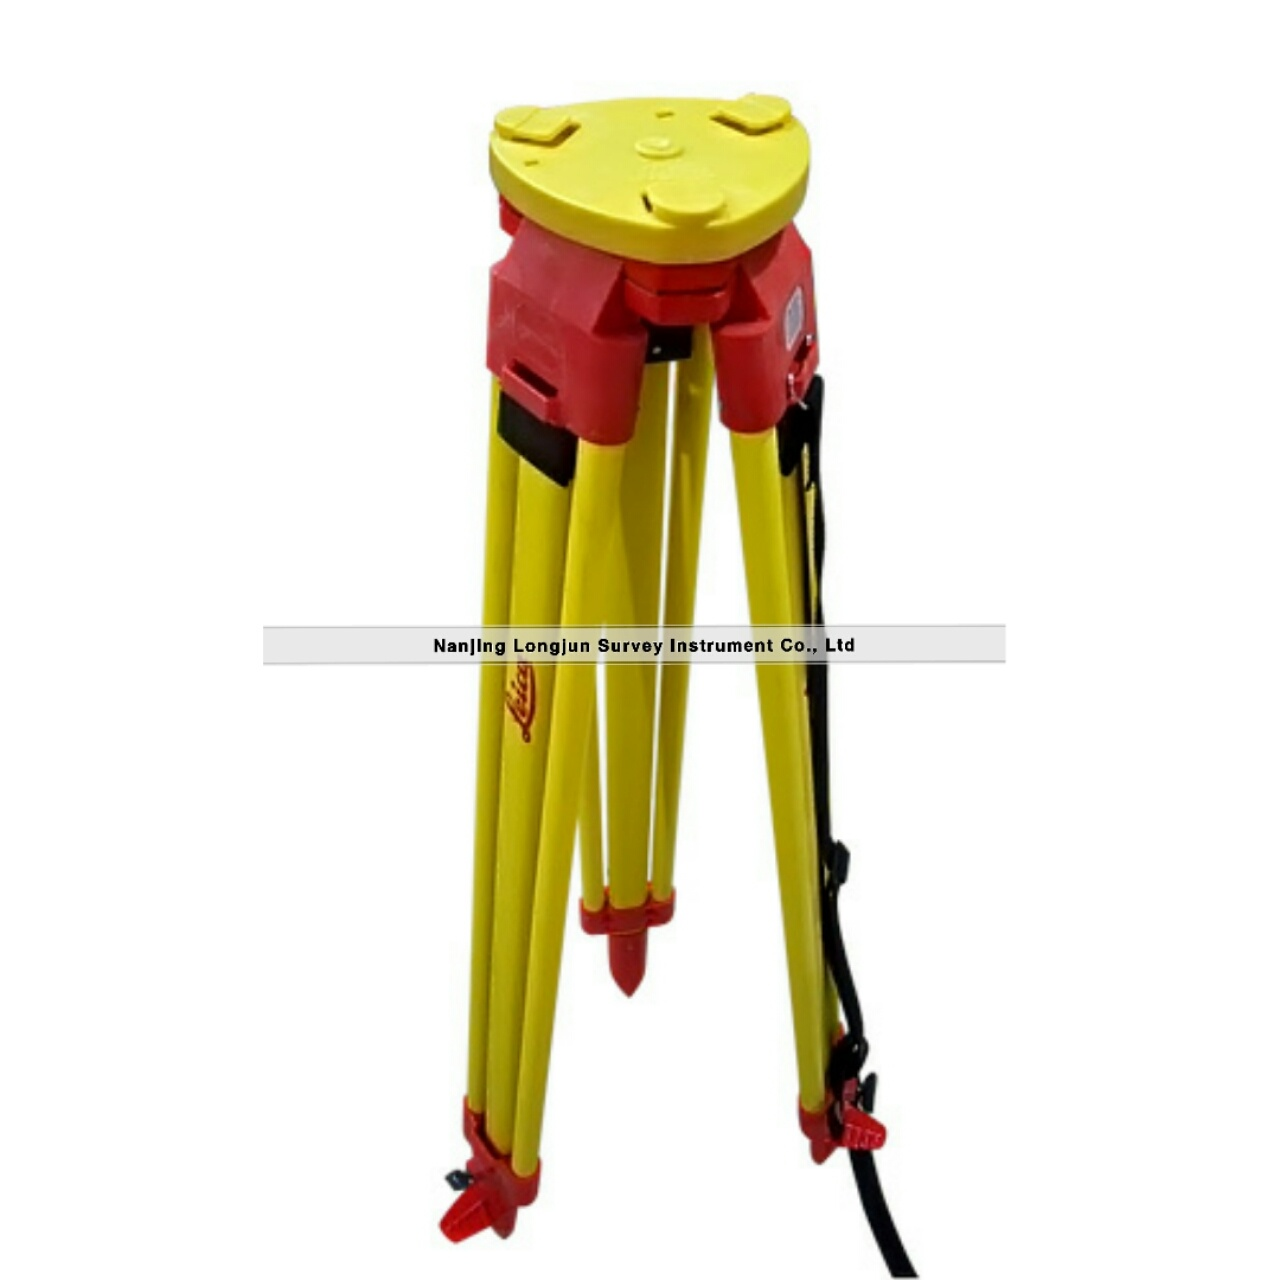 Hot Item Leica Wooden Tripod For Total Station Surveying Gst05